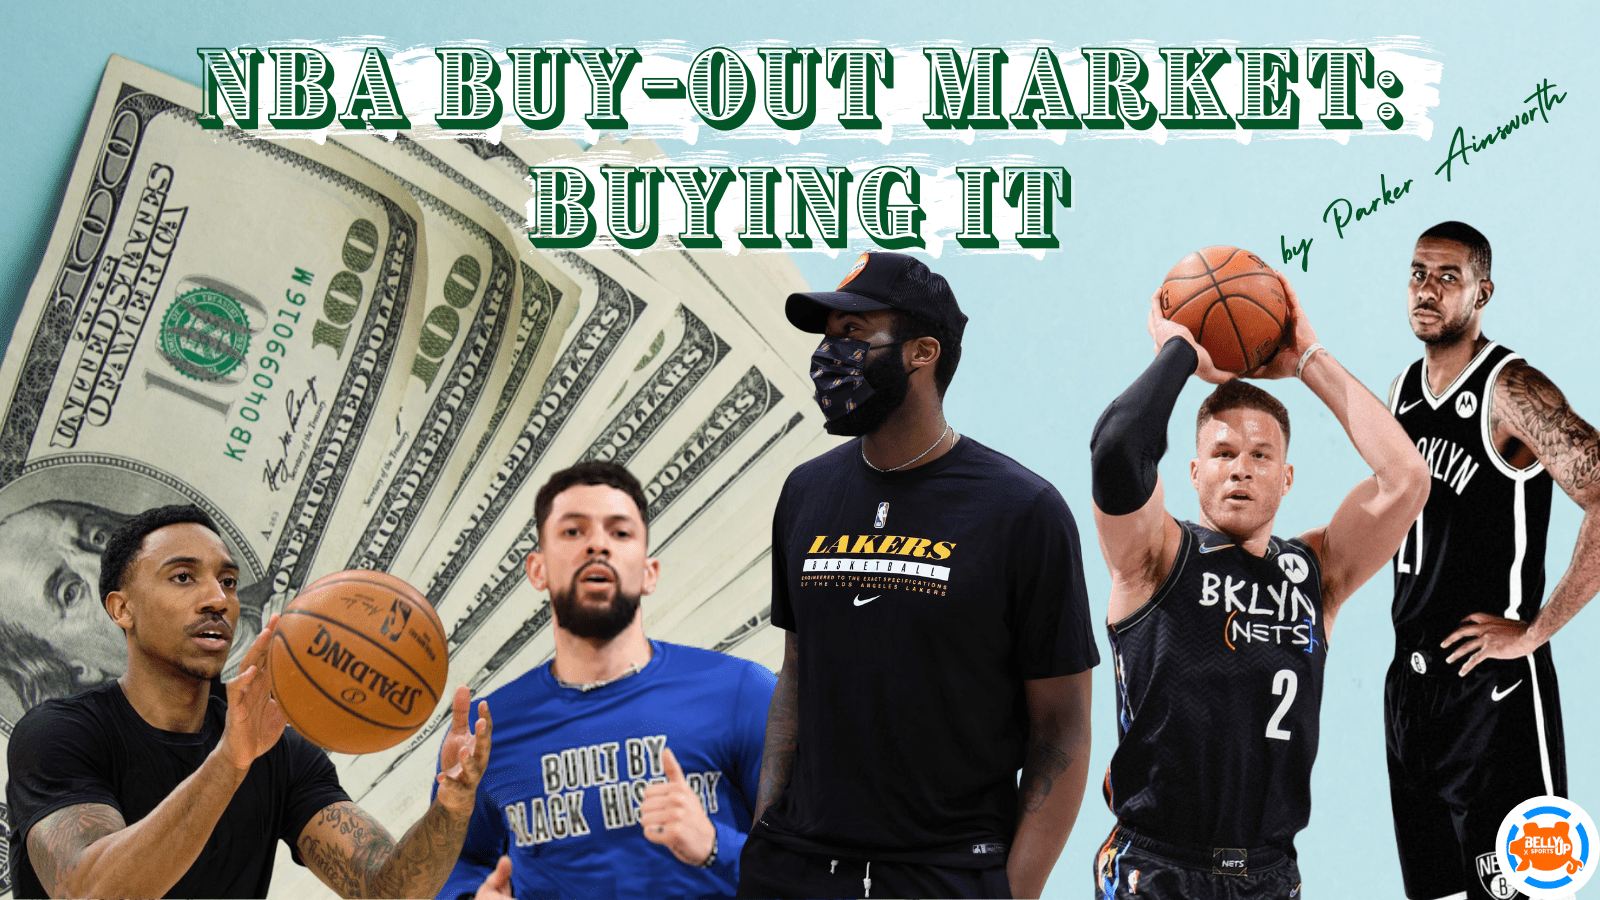 NBA Buy-Out Market: Buying It